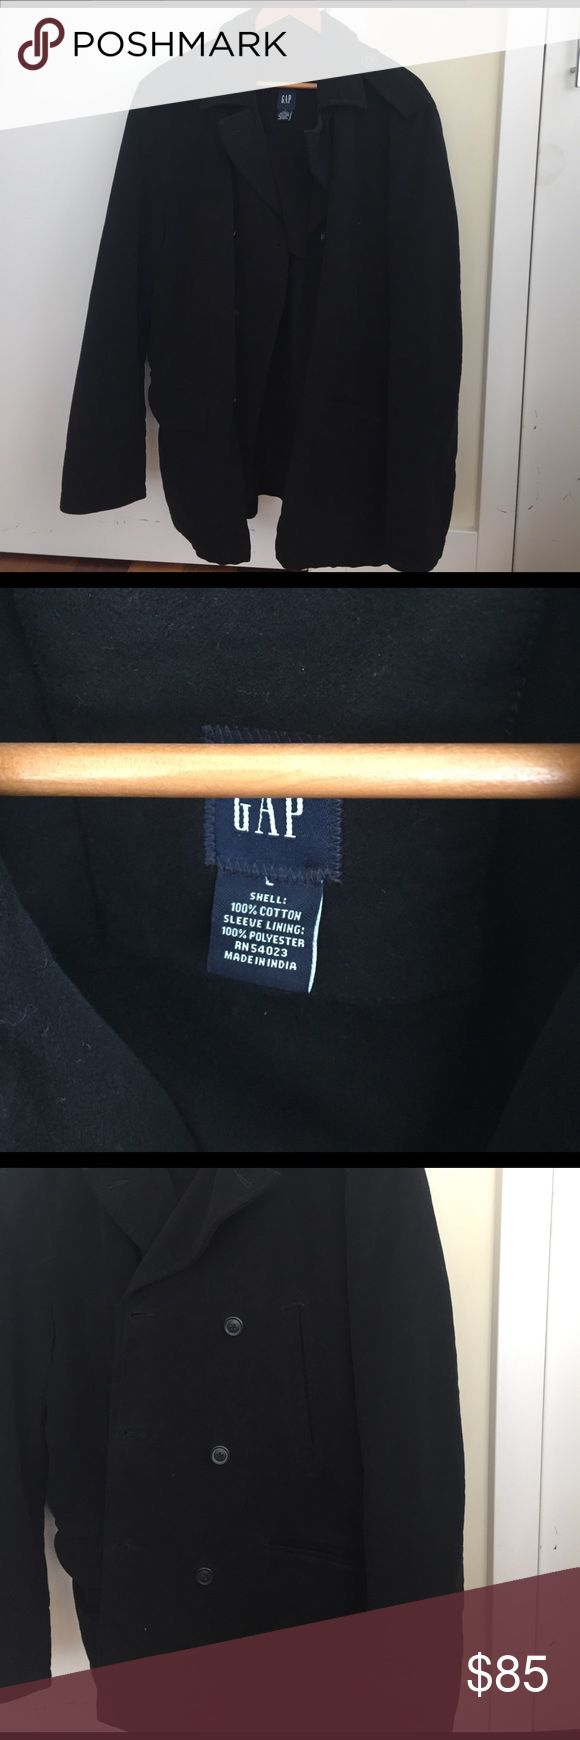 Gap Men Black Felt Peacoat Gap Men Black Felt Peacoat. Worn only once! Great for the winter or evening events GAP Jackets & Coats Pea Coats